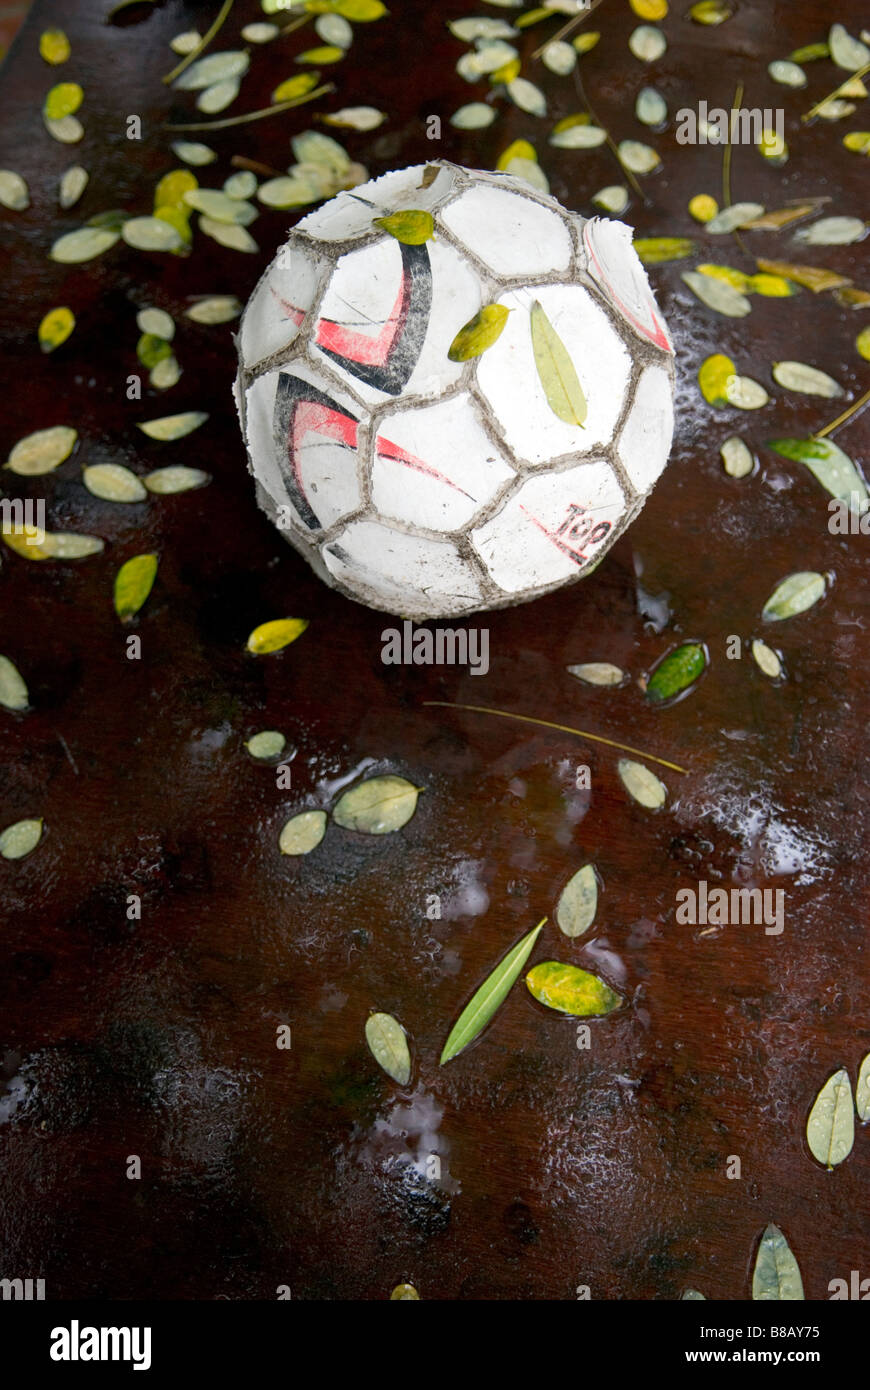 a well worn used deflated football in the rain on a table surrounded by fallen leaves - Stock Image